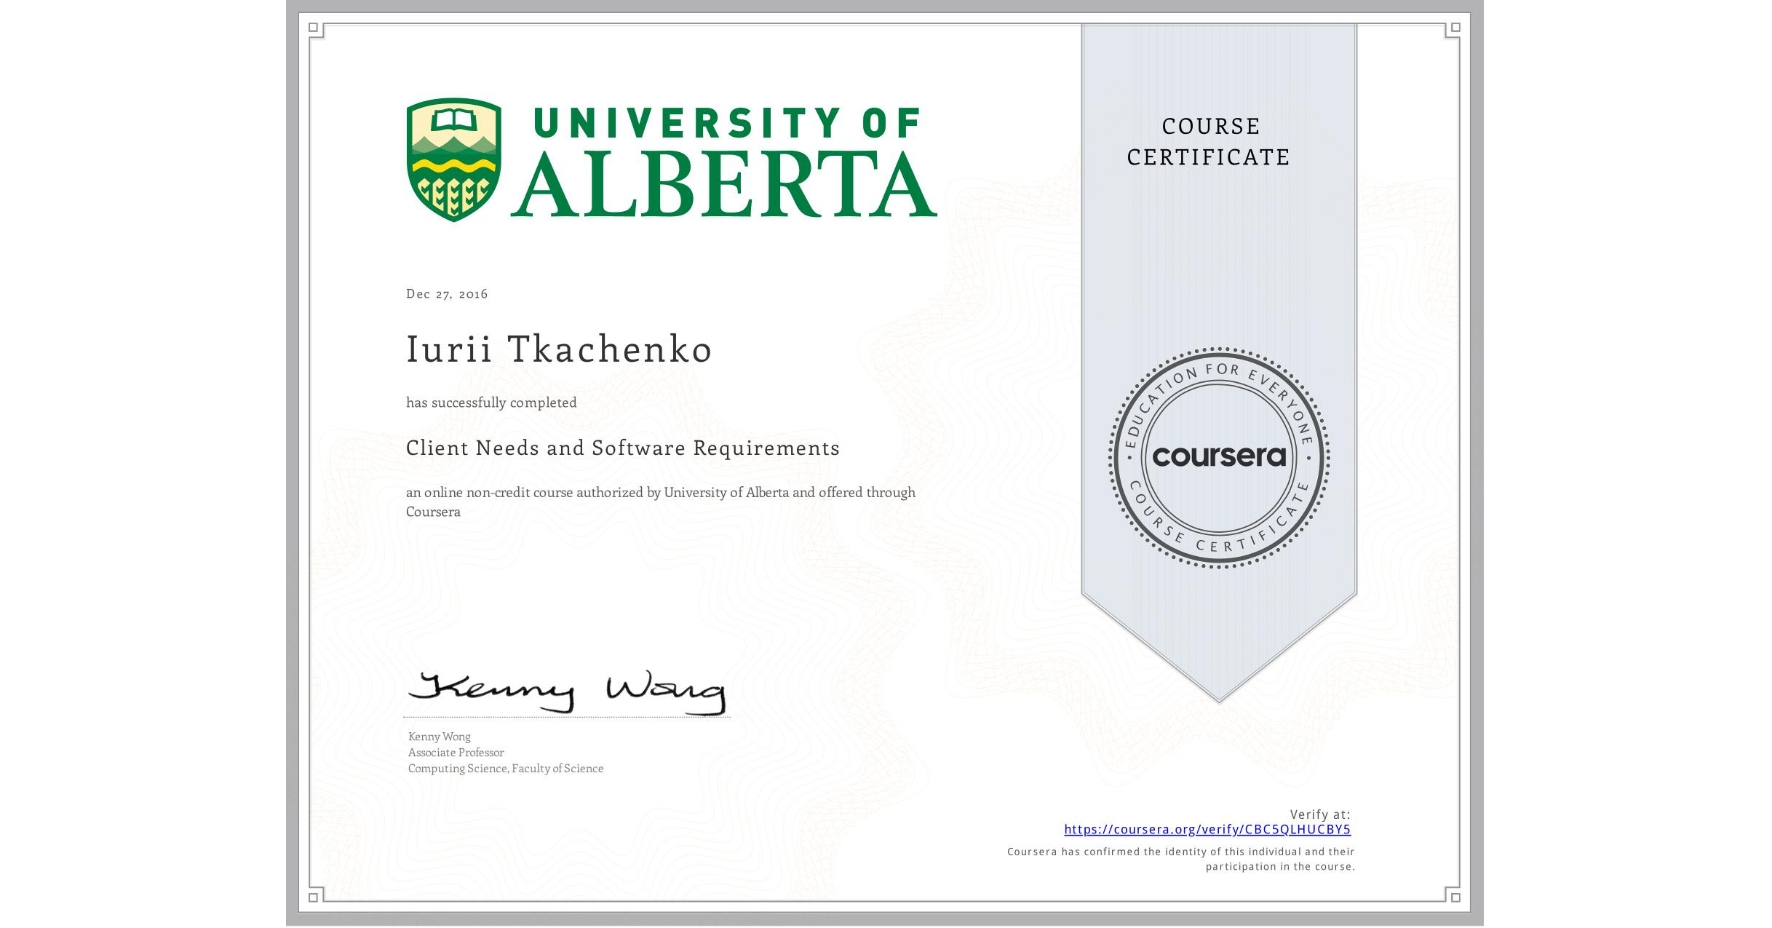 View certificate for Iurii Tkachenko, Client Needs and Software Requirements , an online non-credit course authorized by University of Alberta and offered through Coursera